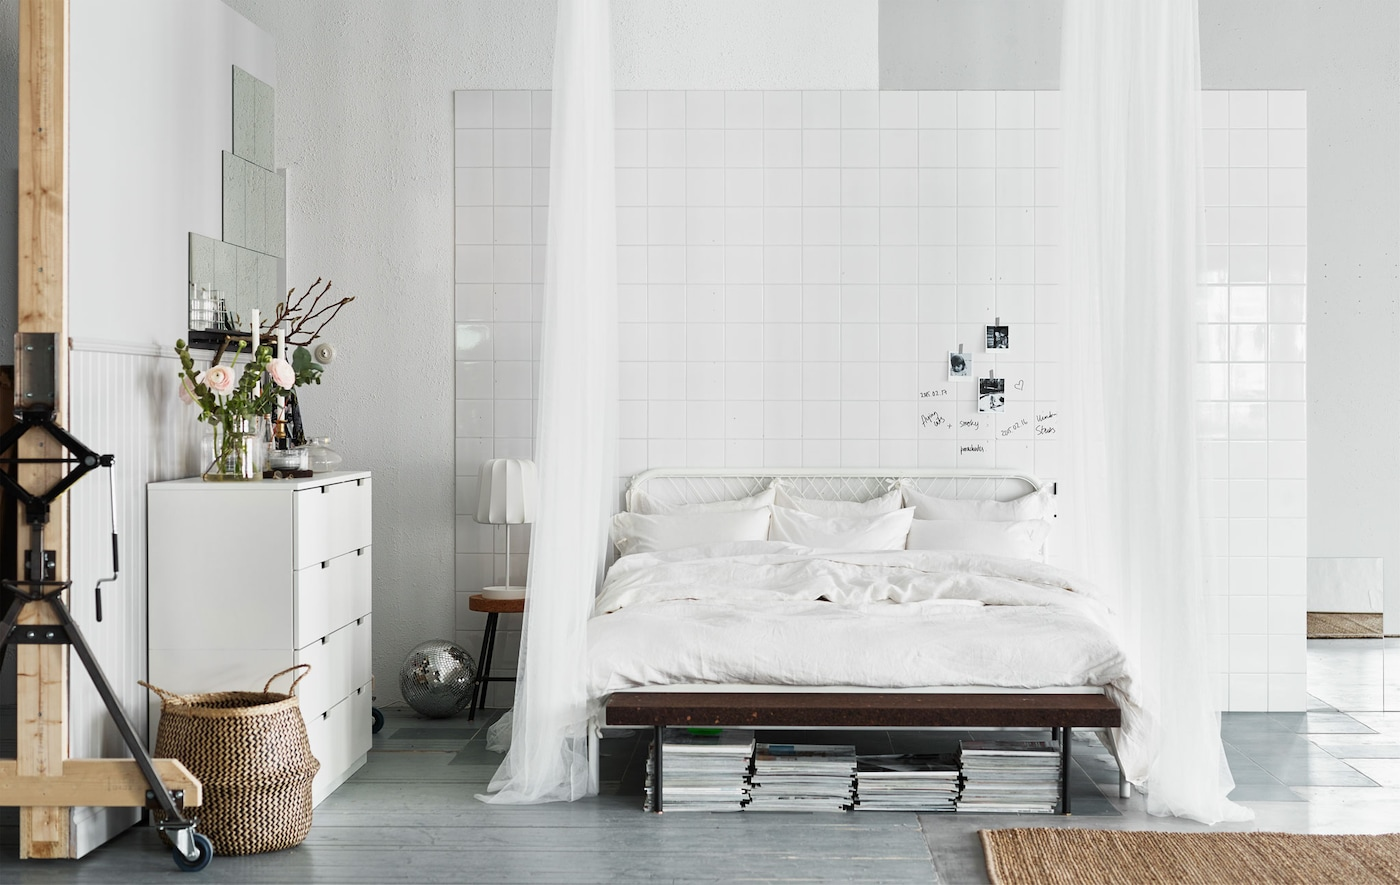 A big white bed low to the floor with crisp white sheets and pillows and sheer white curtains that drape to the floor.